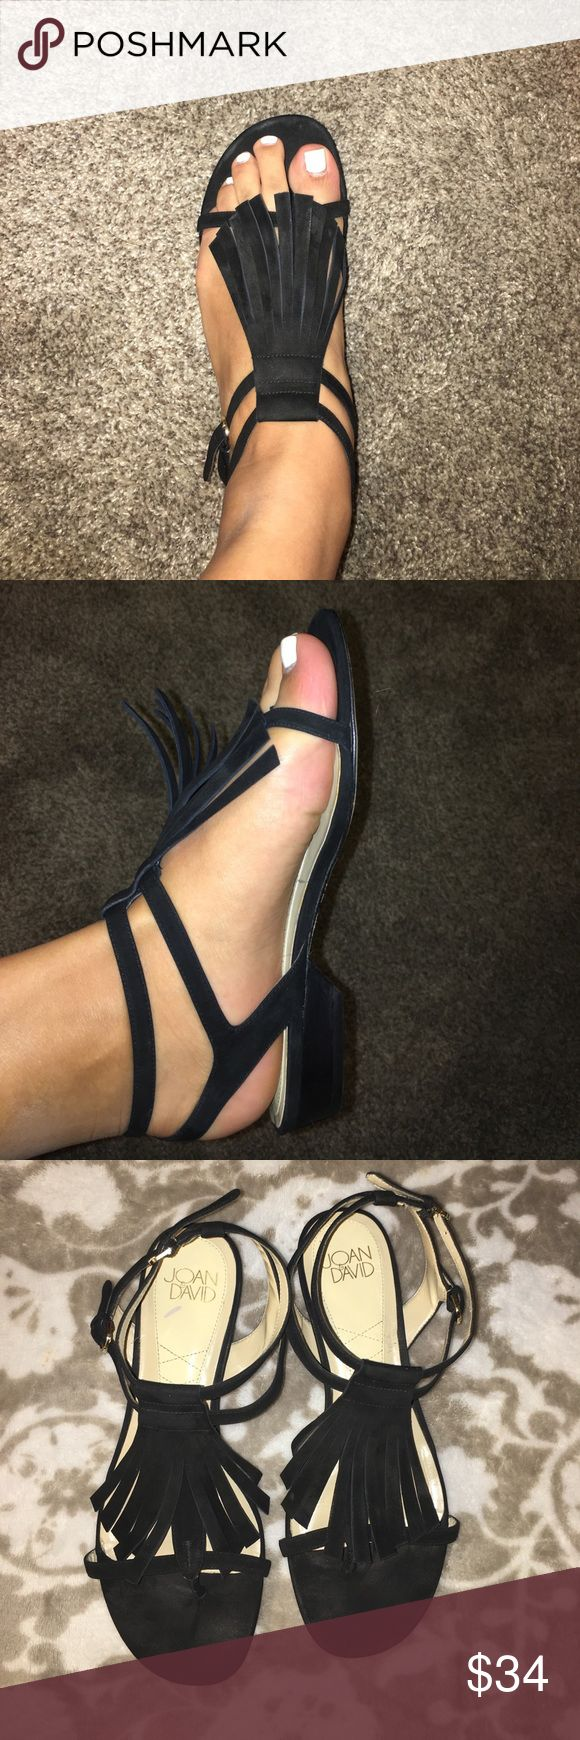 Joan & David suede fringe boho sandals Good condition, fringe suede sandals. Comfy perfect for this summer! Joan & David Shoes Sandals